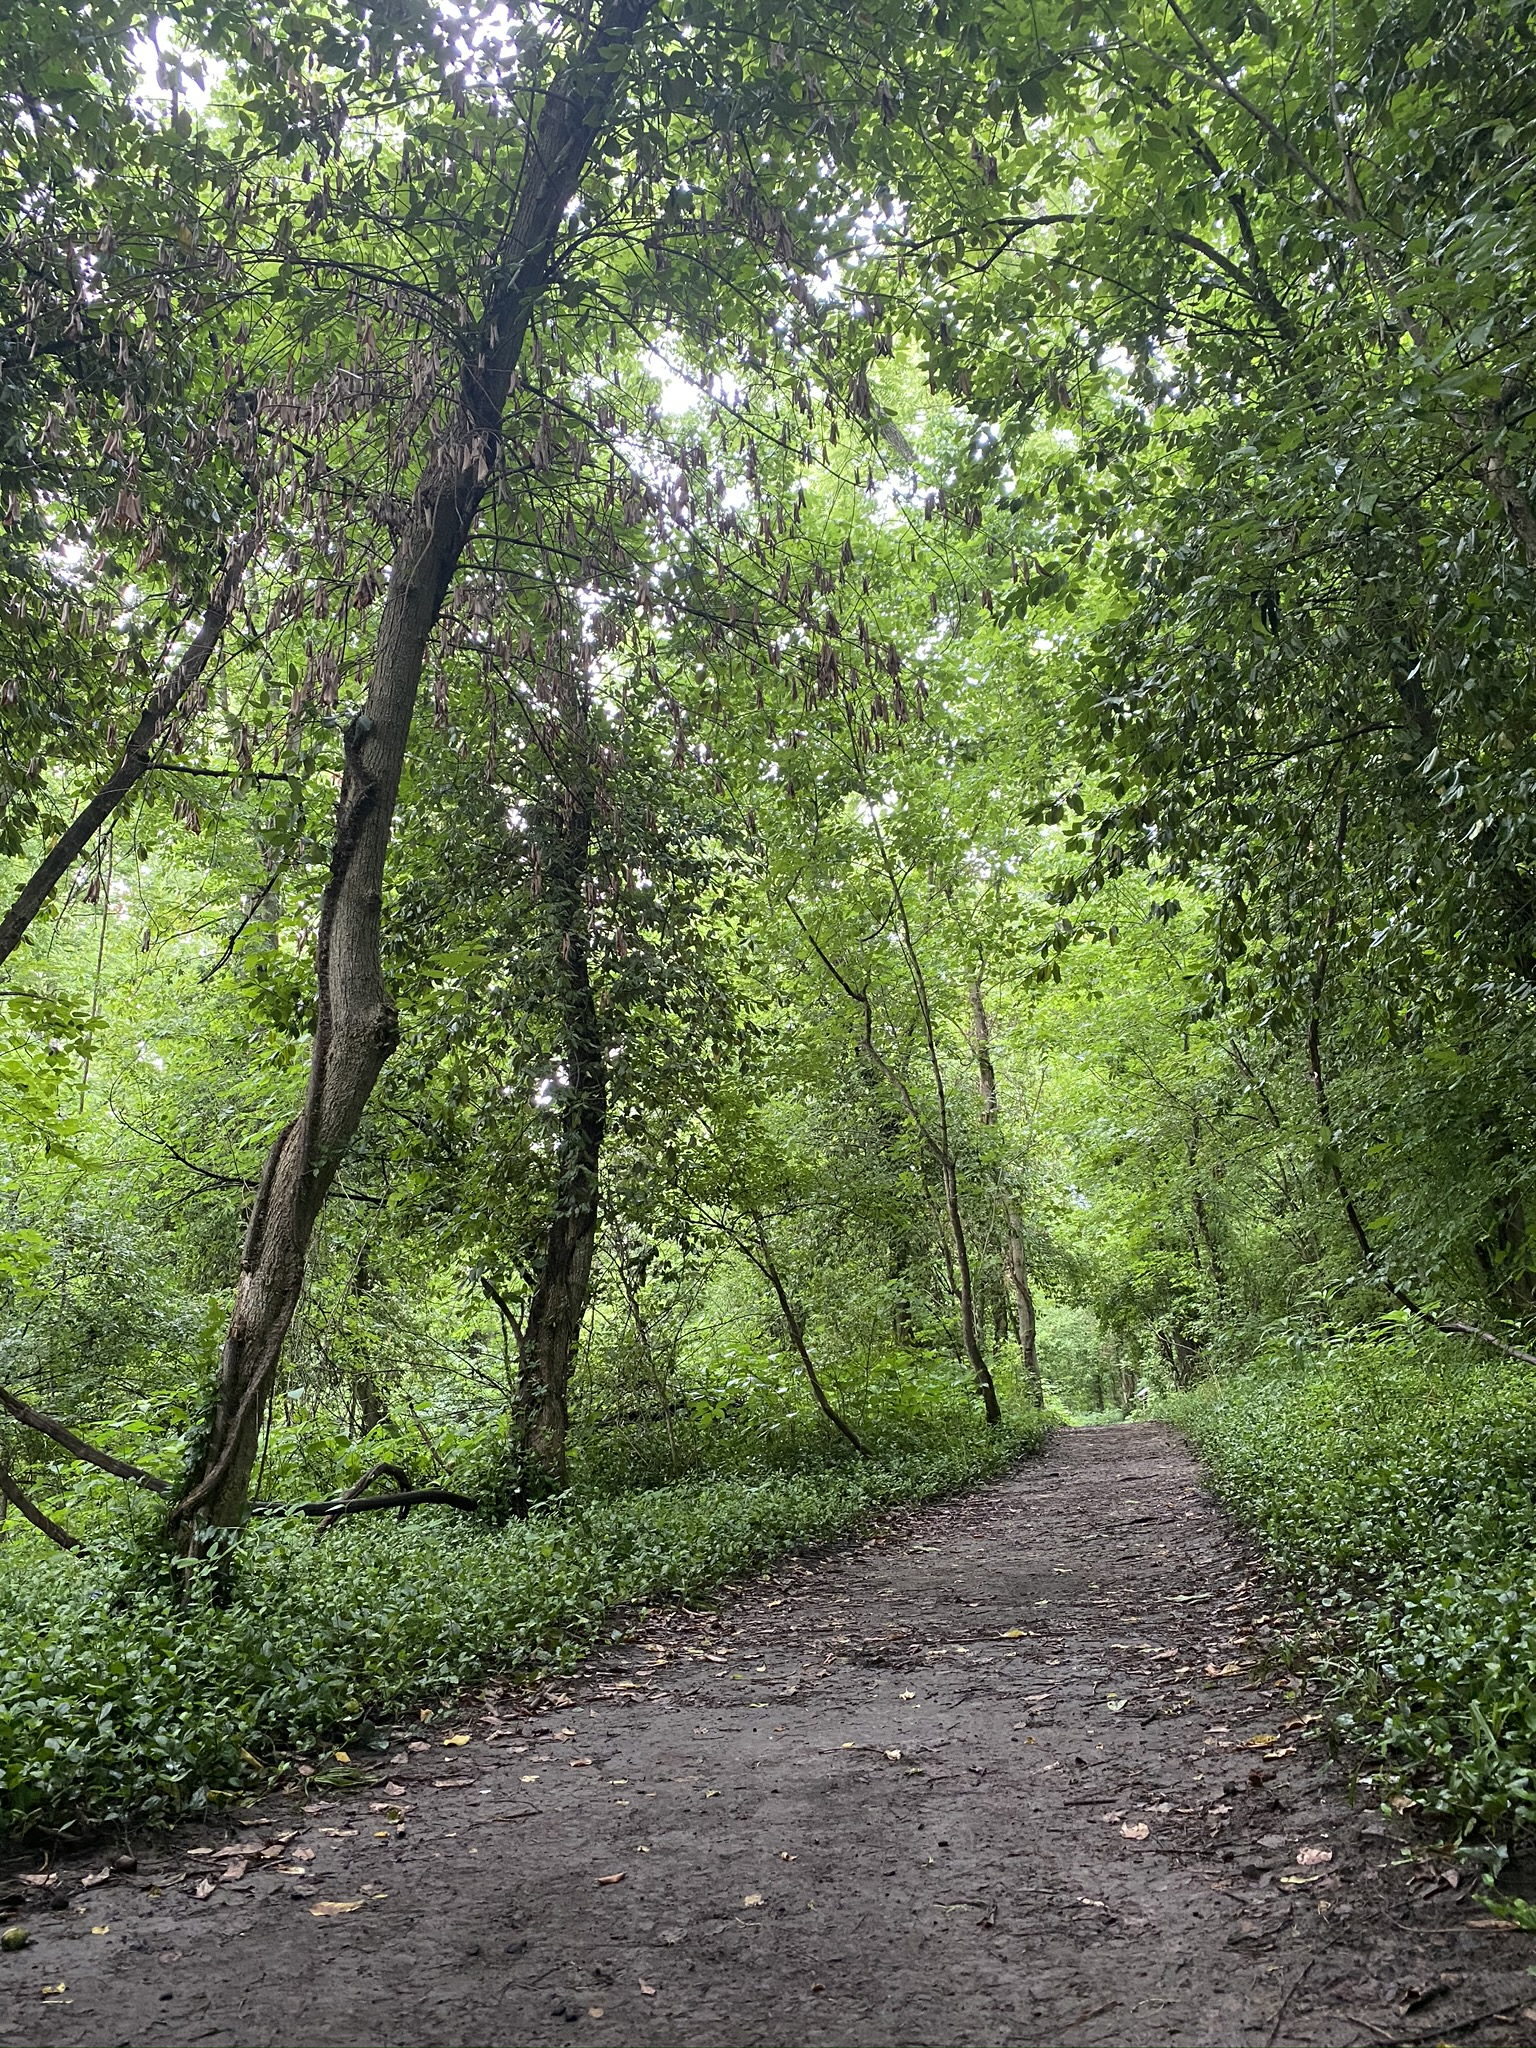 Hiking trail at East Loveland Nature Preserve in Loveland, Ohio